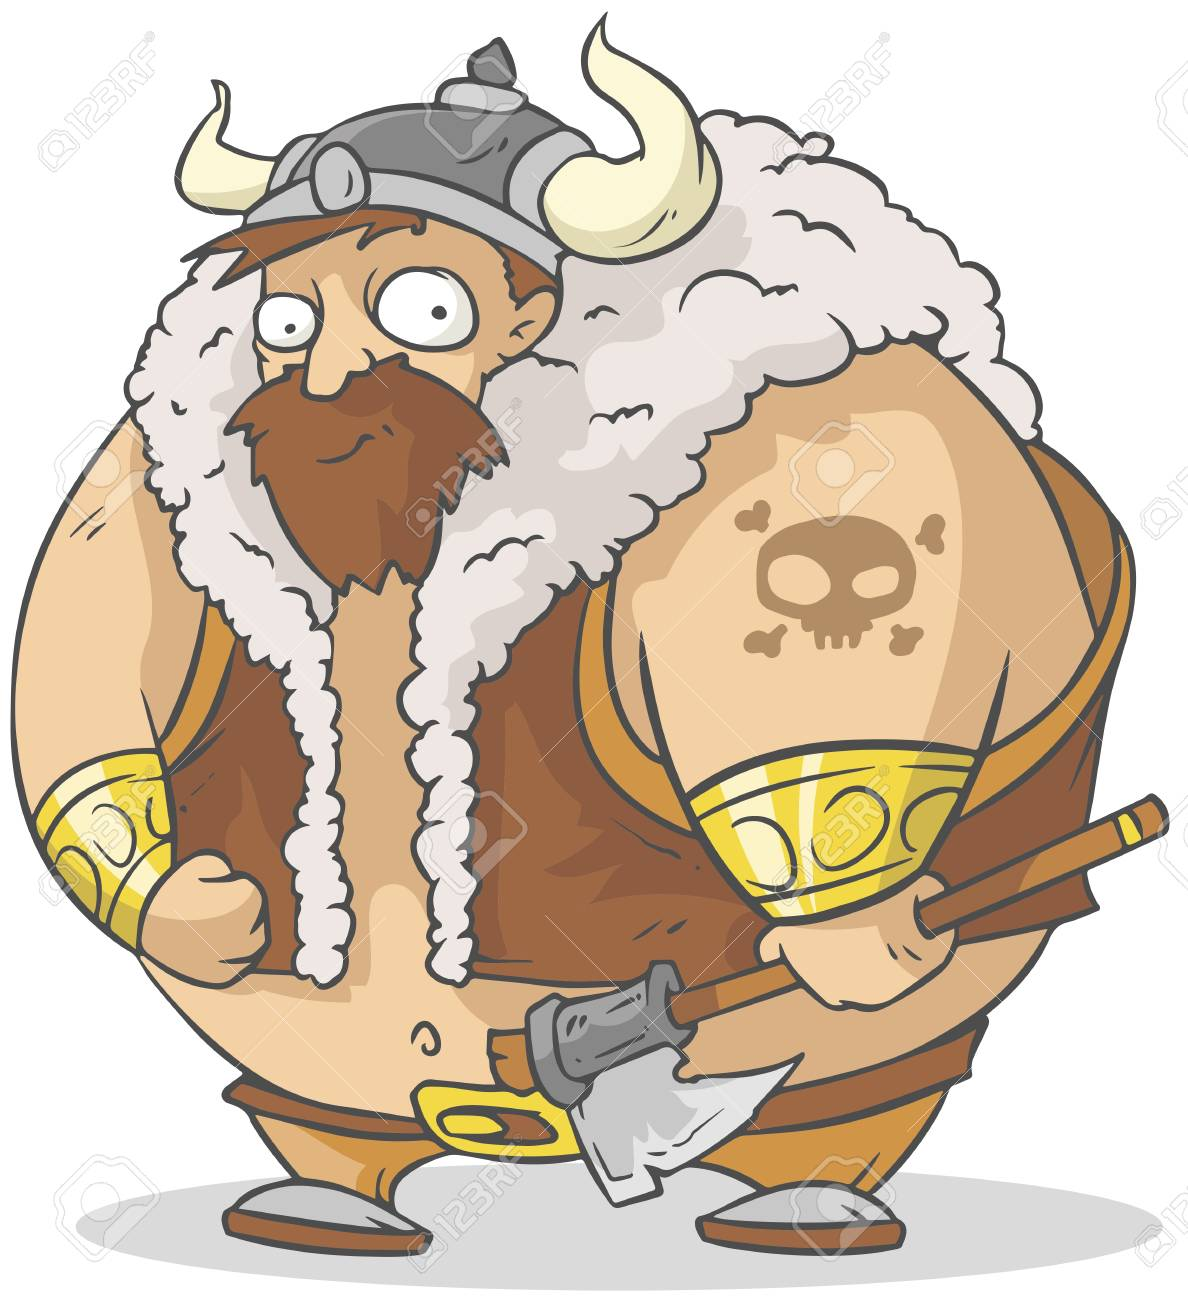 A Illustration Of Funny Cartoon Viking Royalty Free Cliparts